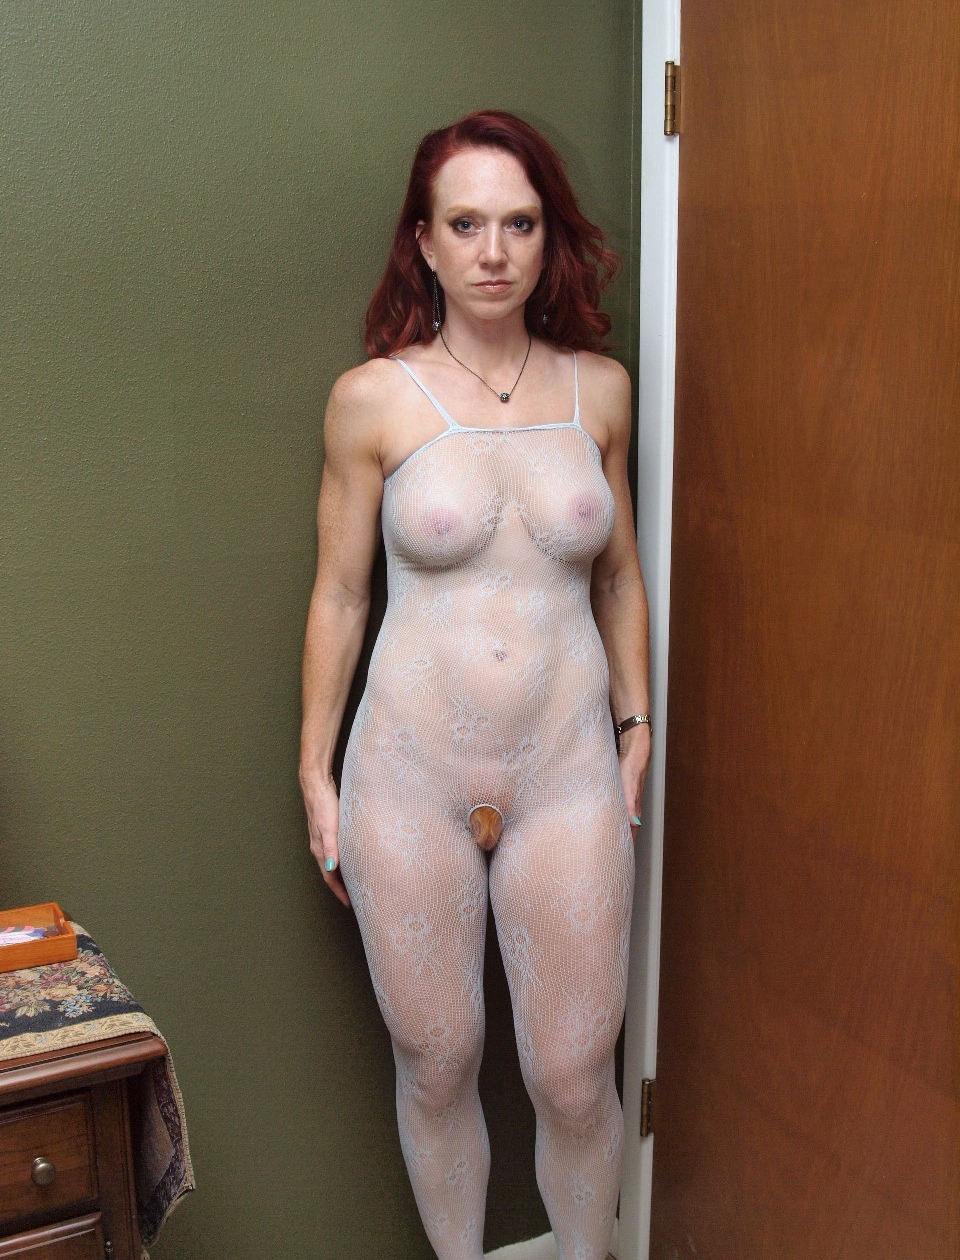 Opinion Nude fit amateur milf discuss